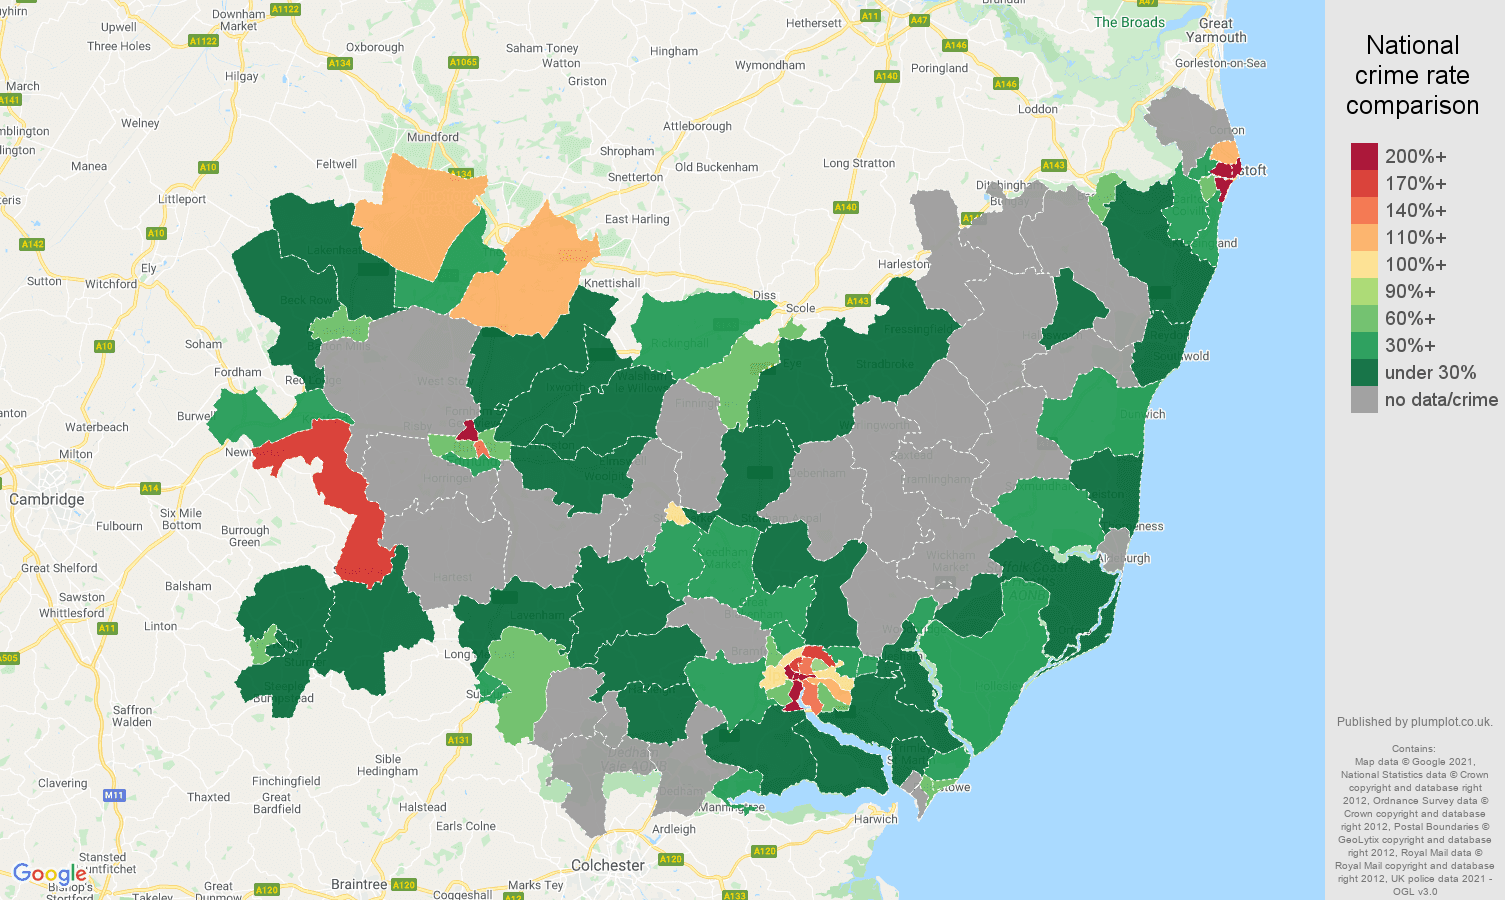 Suffolk bicycle theft crime rate comparison map